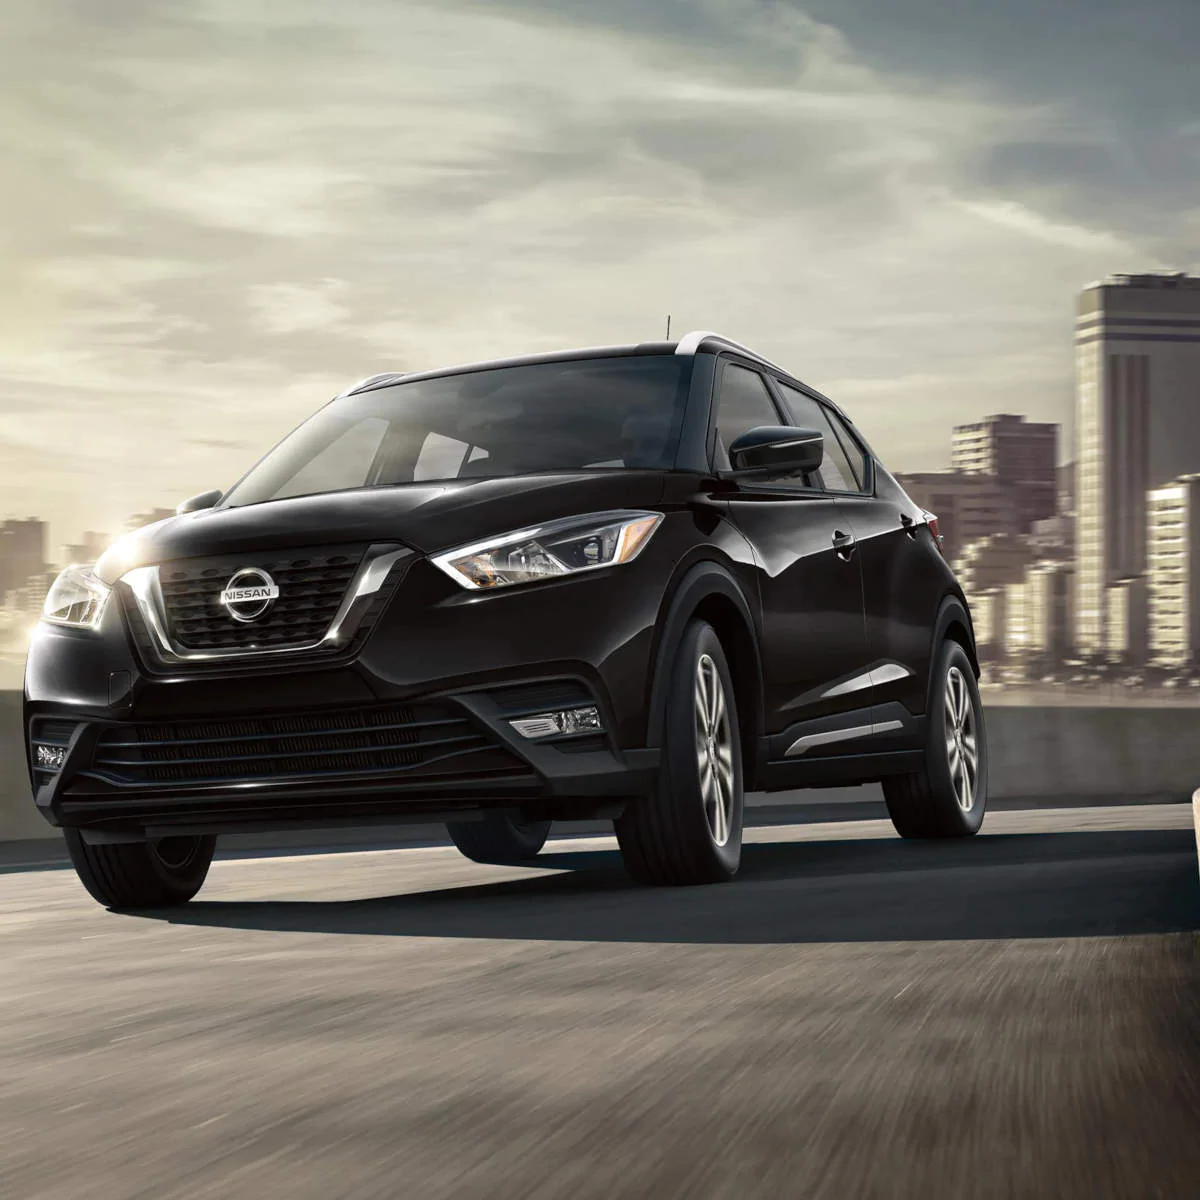 2020 Nissan Kicks at Hawkinson Nissan